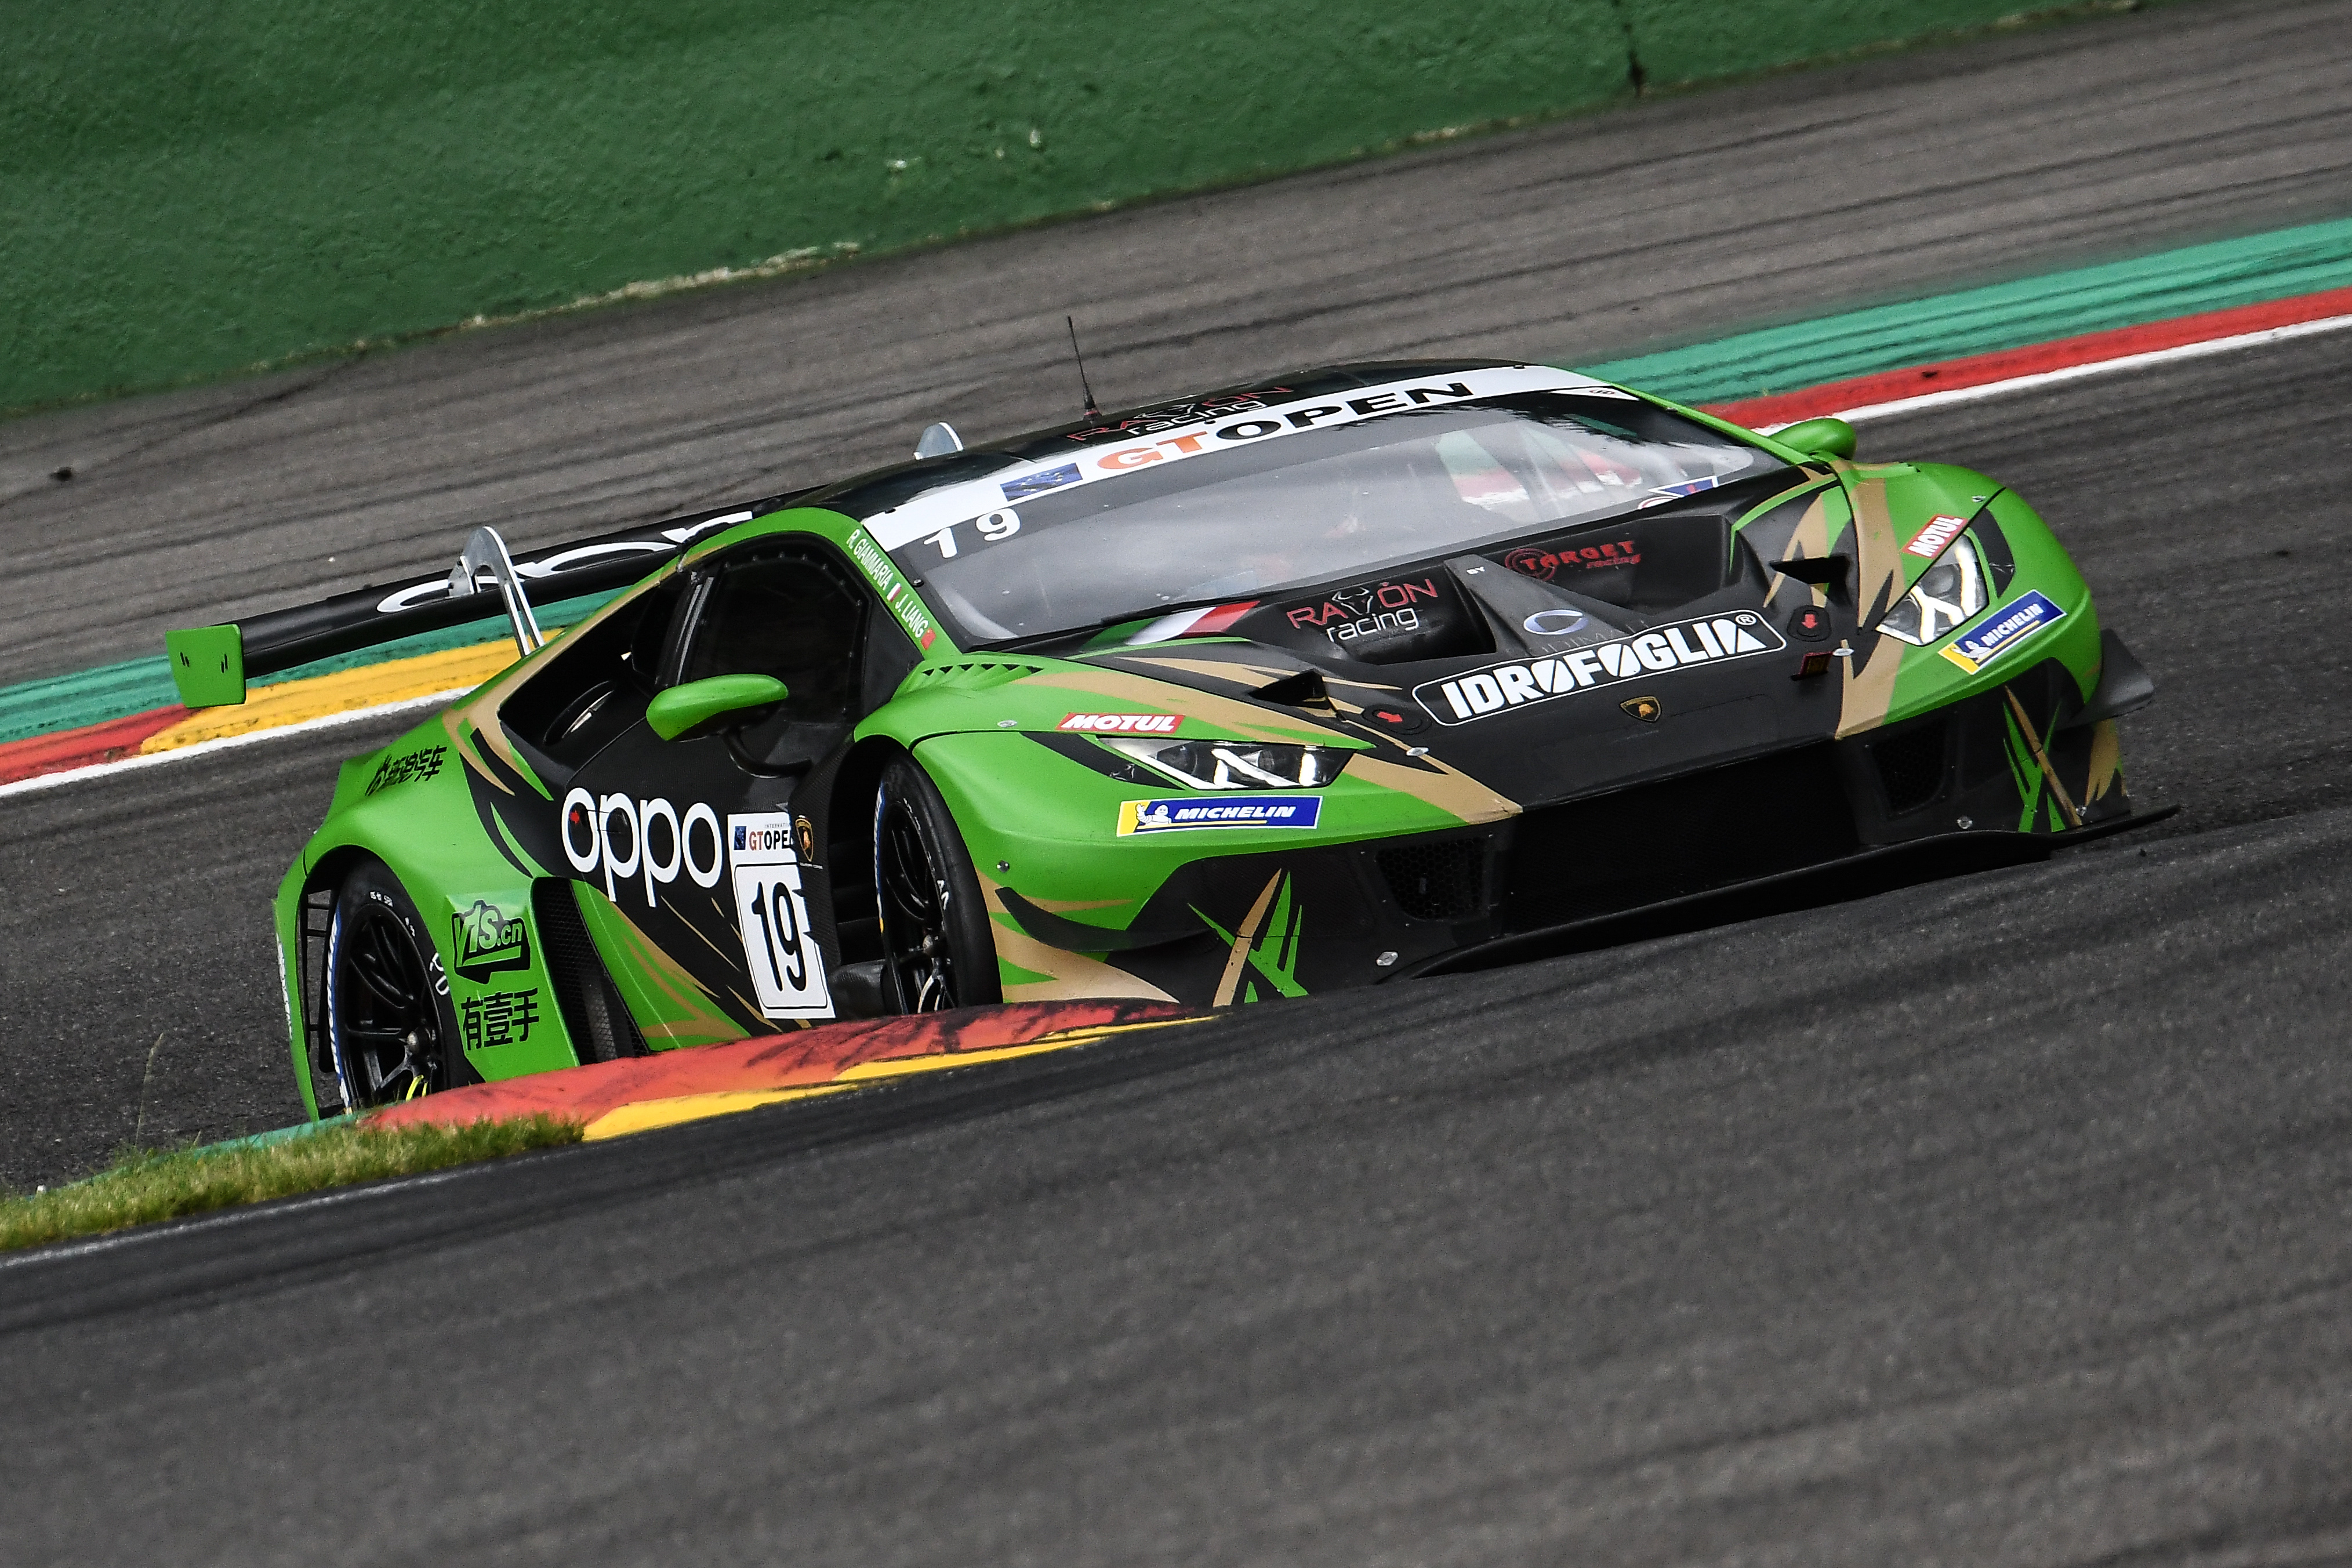 Al Red Bull Ring per il GT Open, Raton by Target con Liang-Giammaria